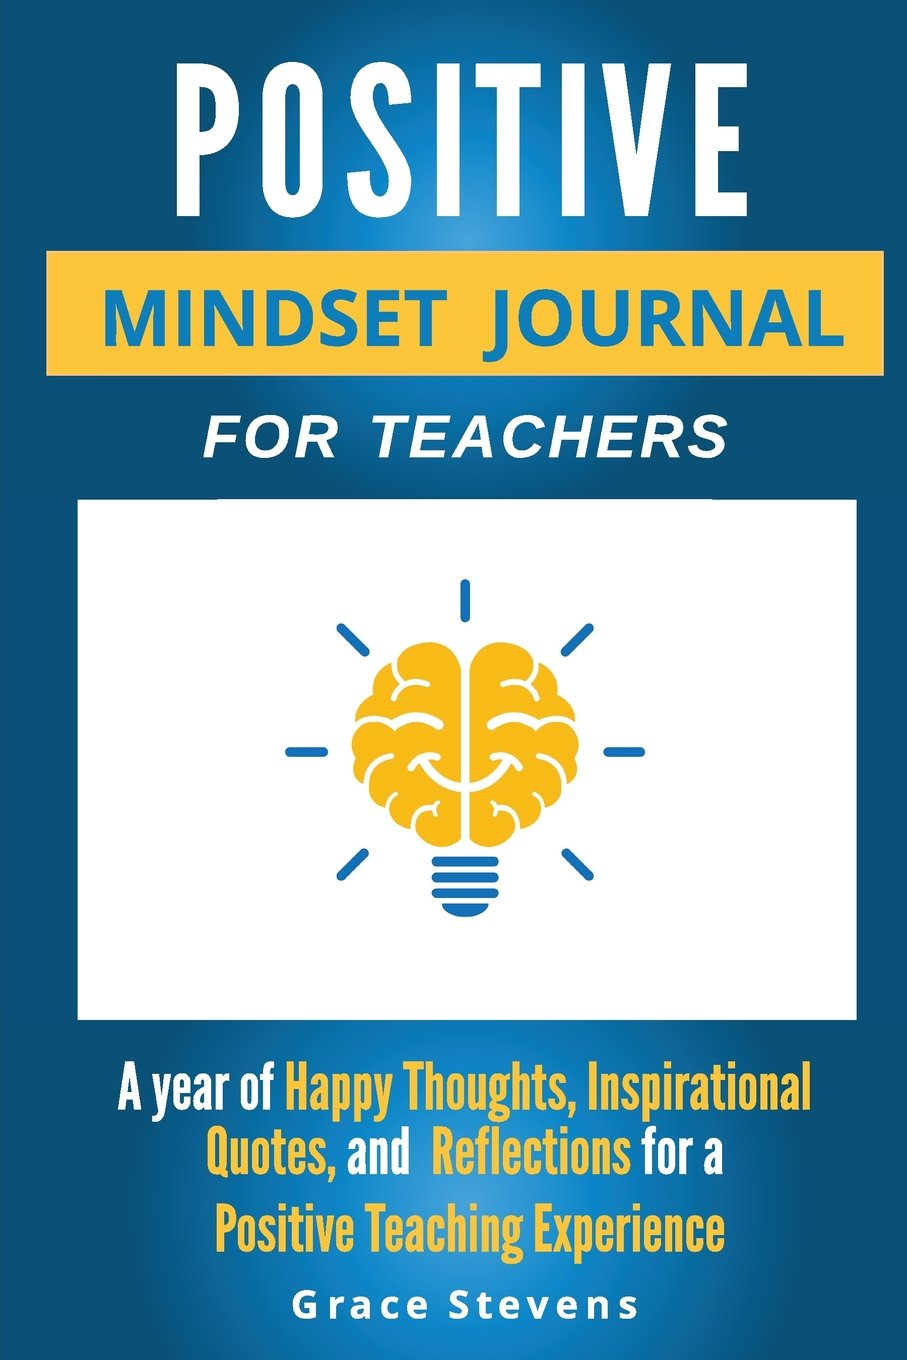 Positive Mindset Journal For Teachers: Year of Happy Thoughts, Inspirational Quotes, and Reflections for a Positive Teaching Experience (Academic Edition) pdf